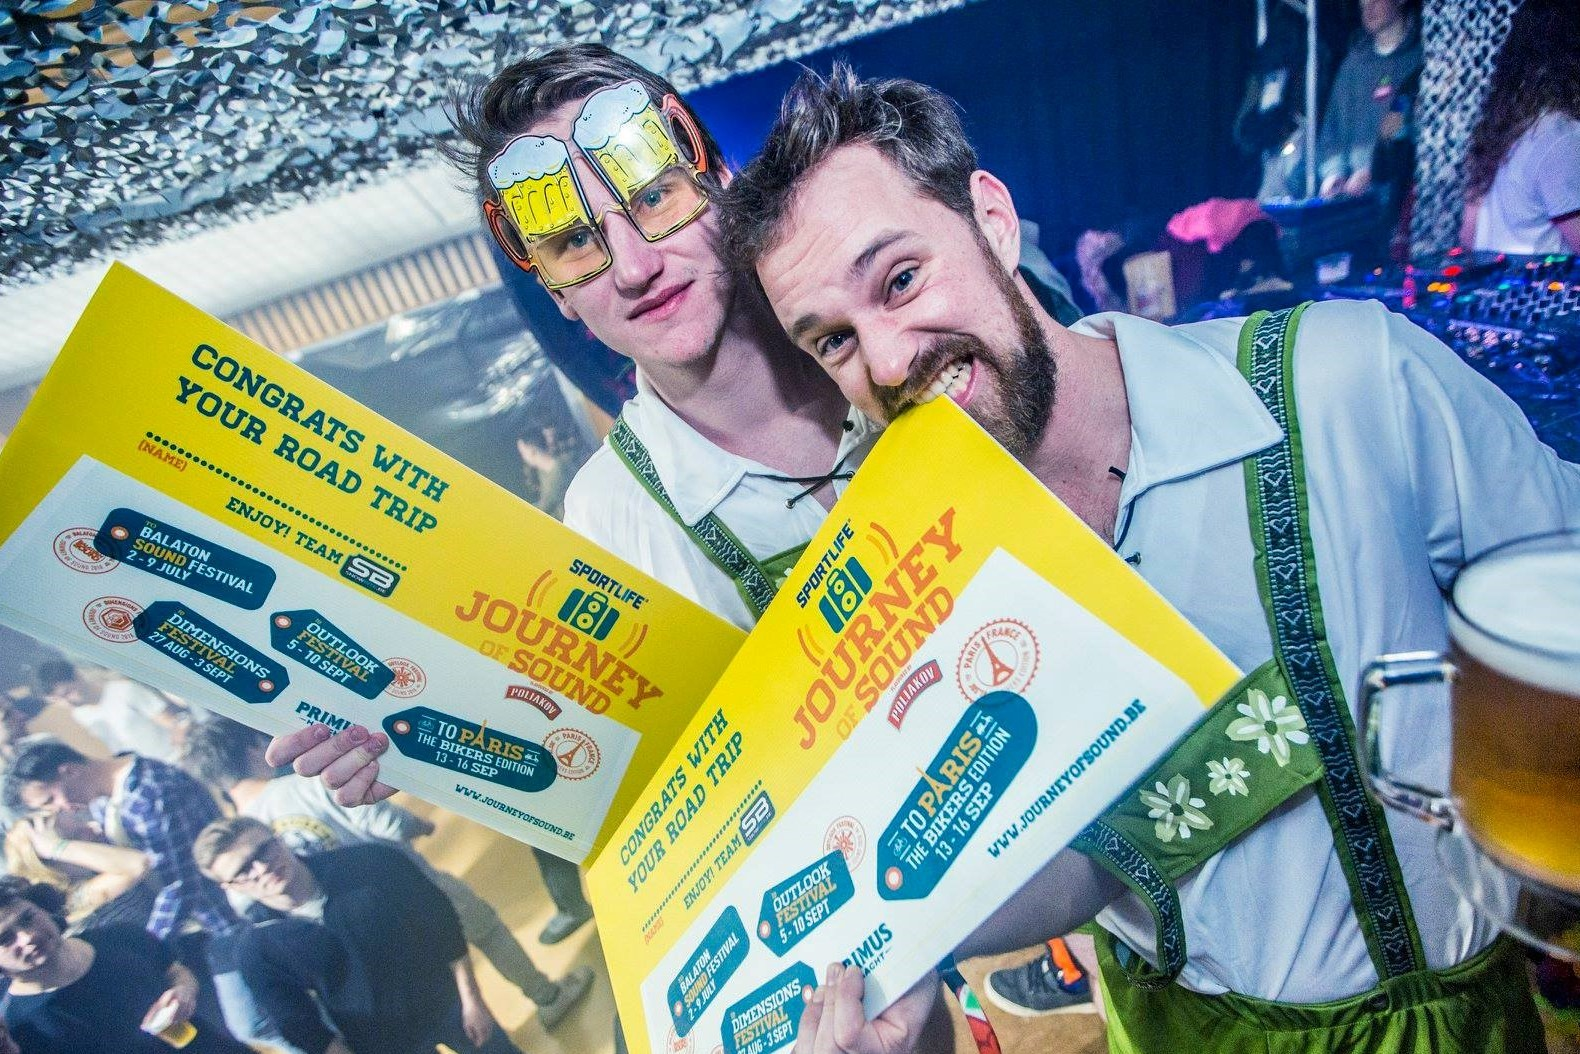 WIN JOURNEY OF SOUND TICKETS#win de road trip van je leven naar oa Balaton Sound Festival